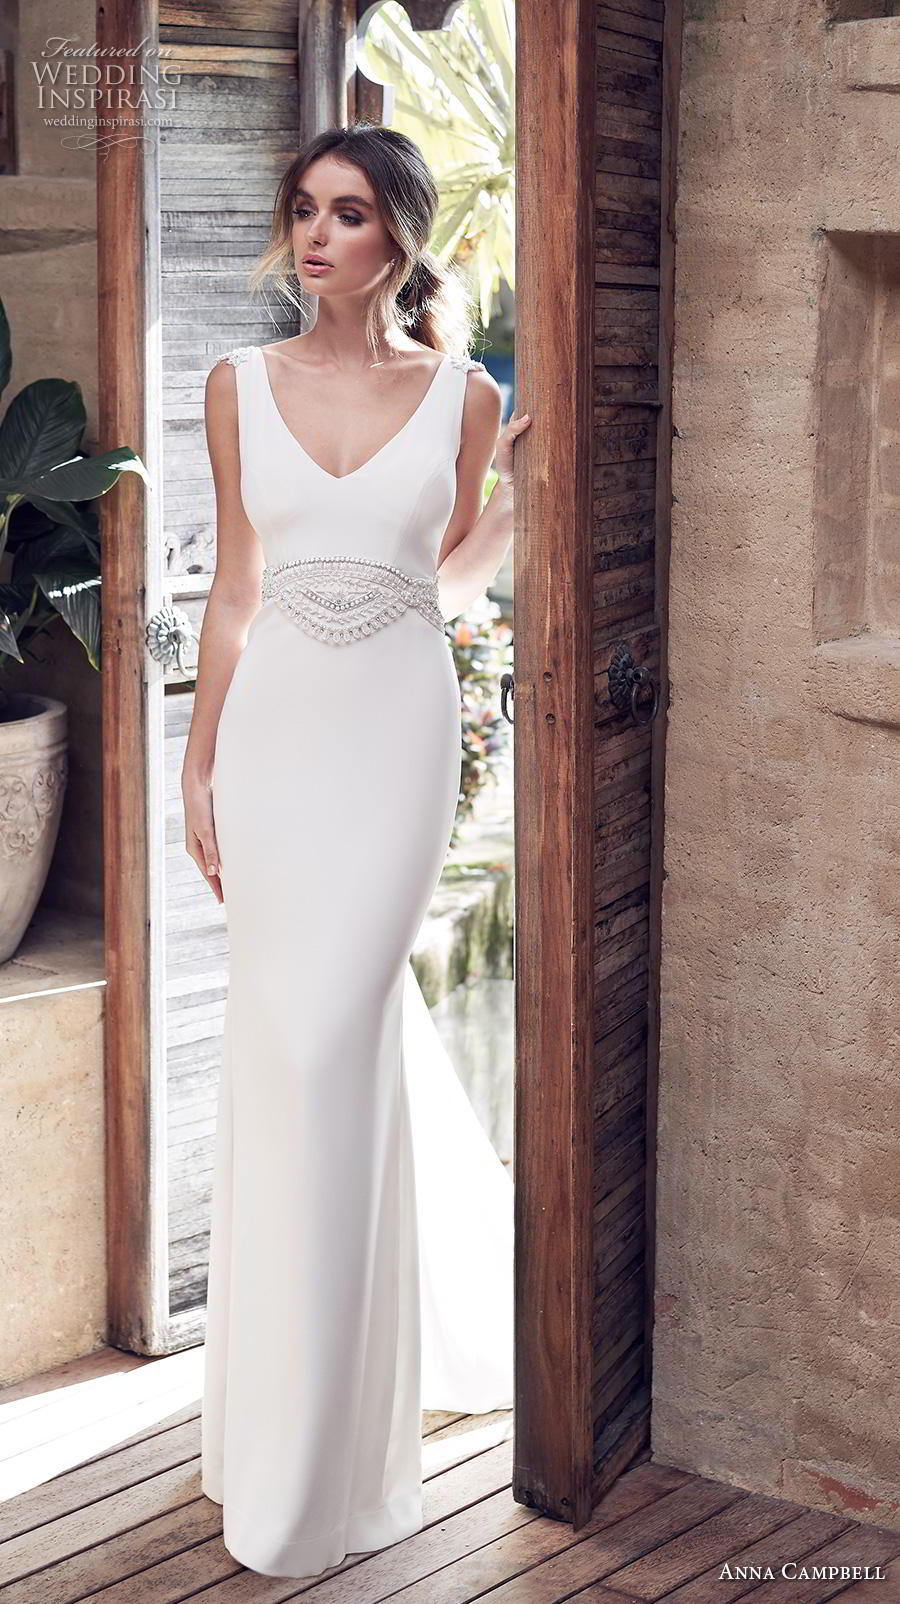 anna campbell 2019 bridal sleeveless v neck simple embellished waist minimalist elegant sheath wedding dress backless v back sweep train (8) mv